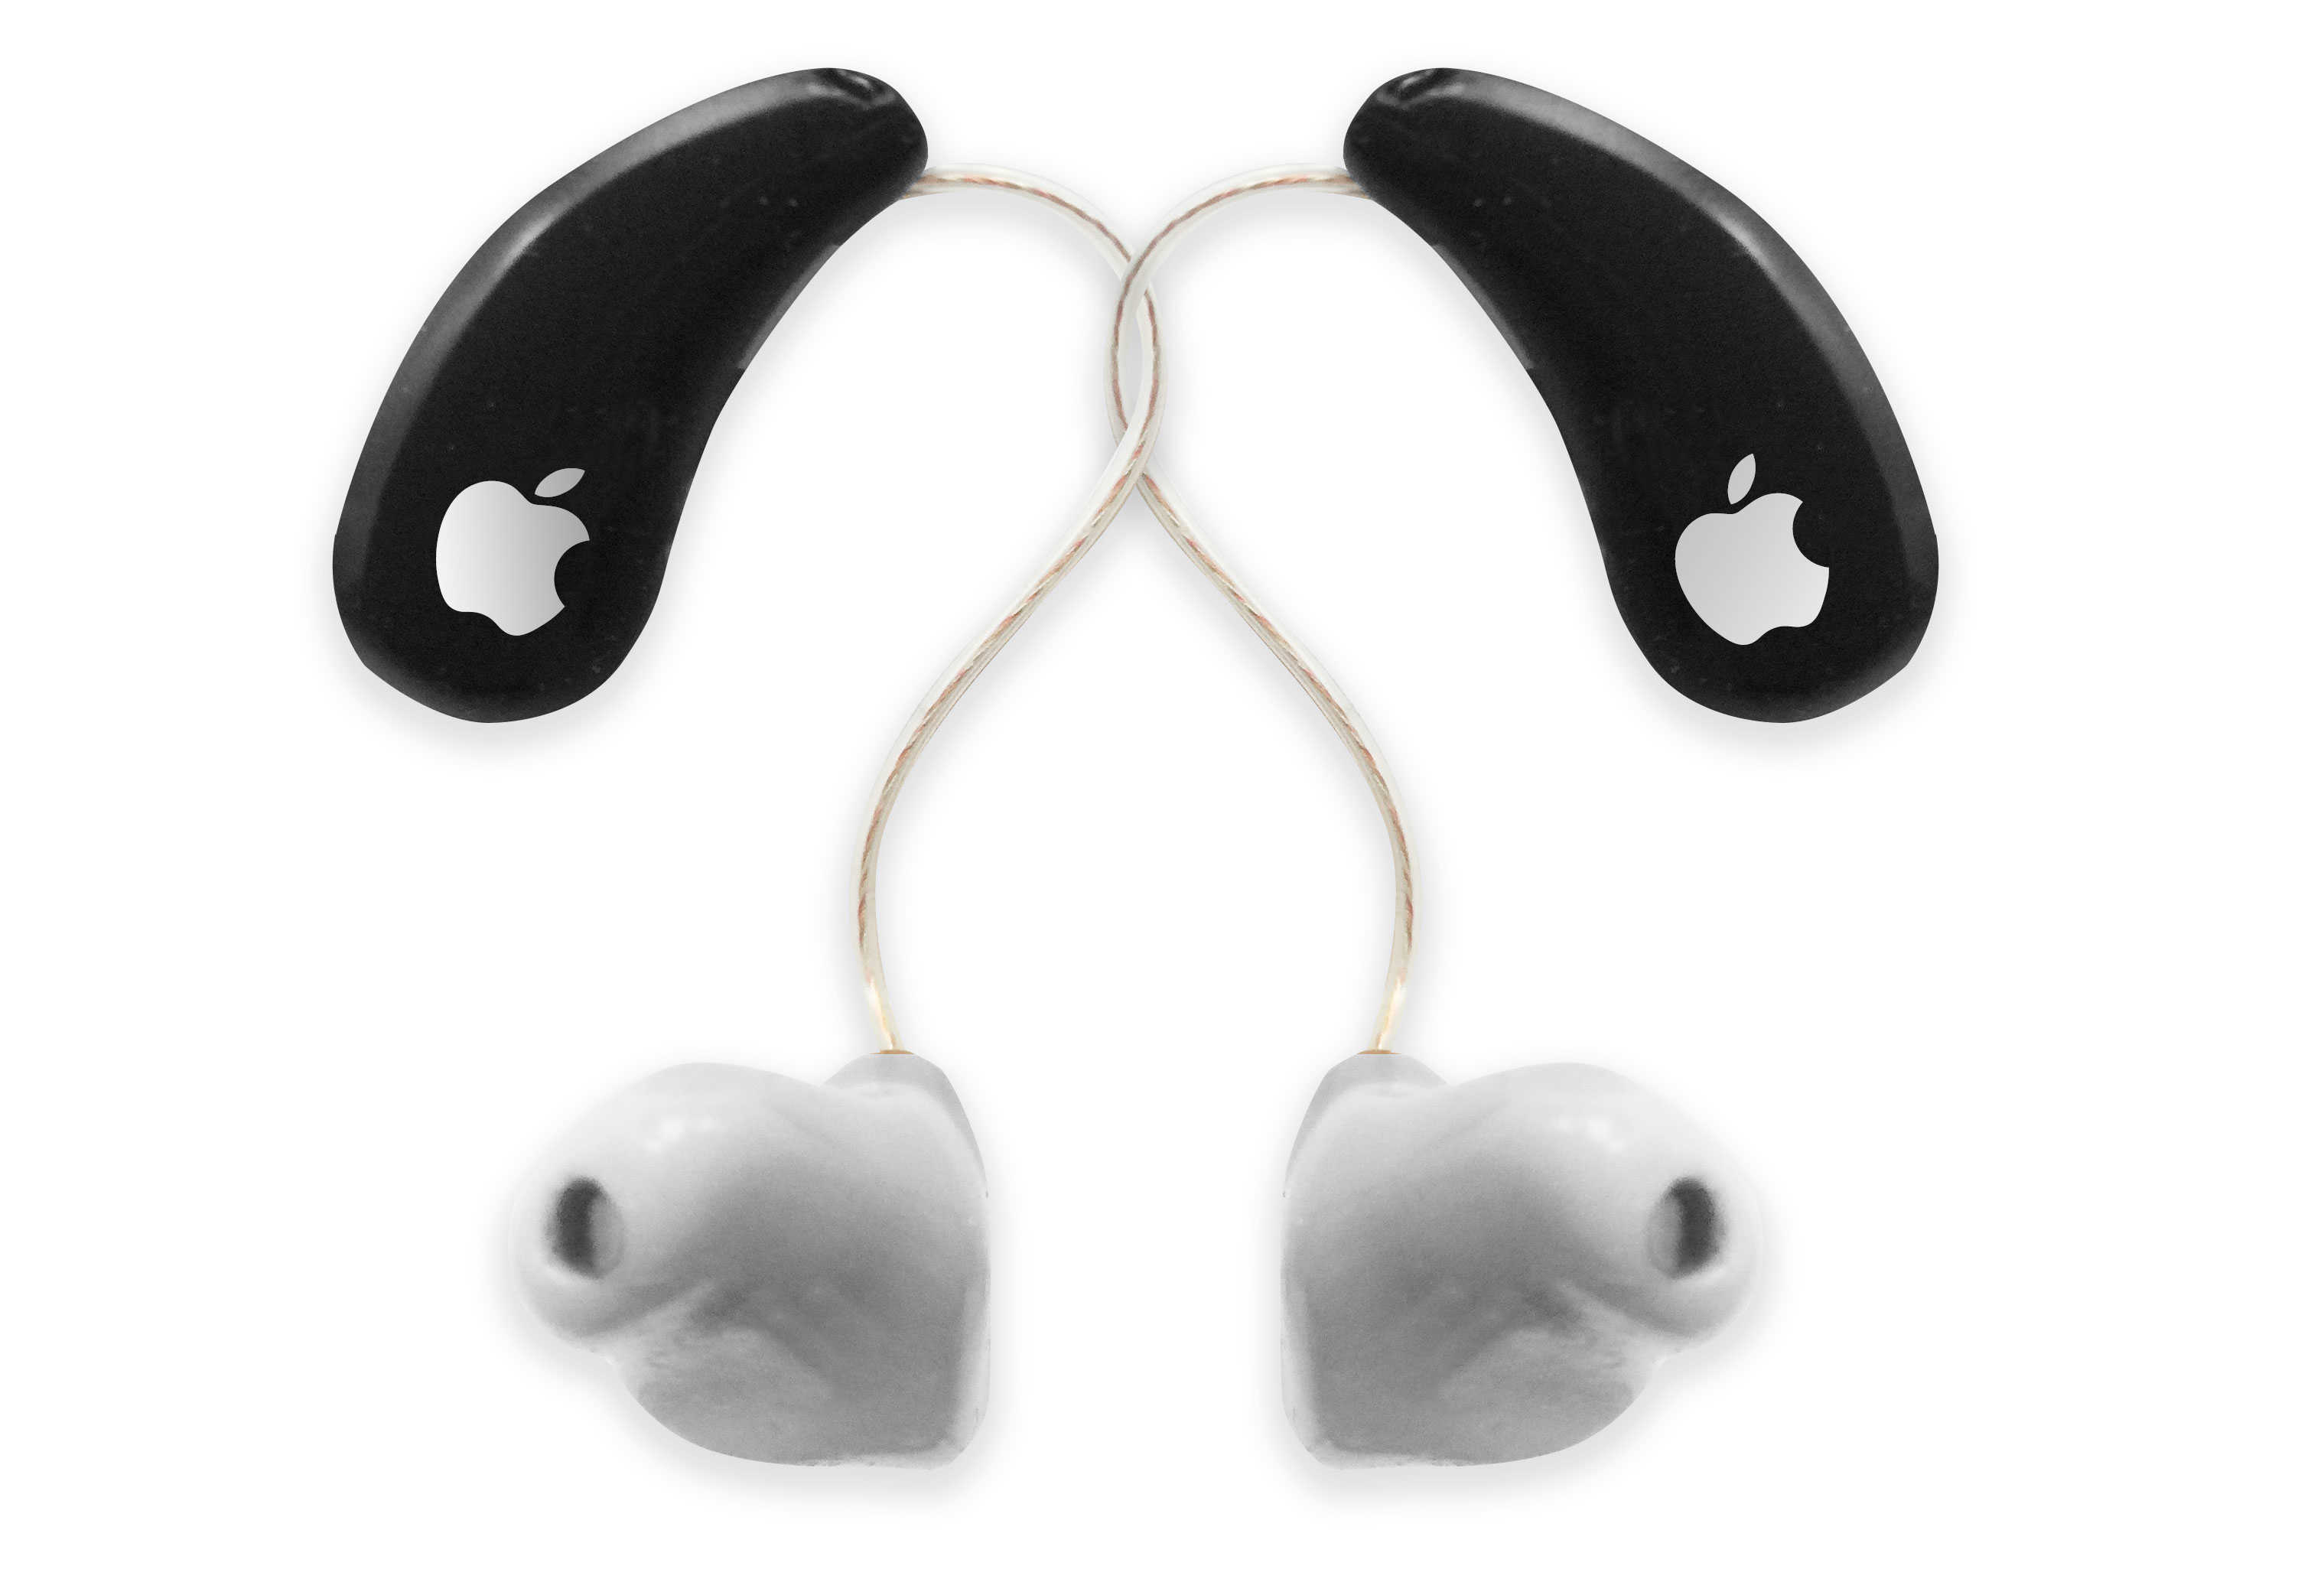 How Apples Wireless Earpods Could Change The Way We Hear Everything Cheap Hearing Aid Ok I Admit These Are Just Regular Aids With An Apple Logo Stuck